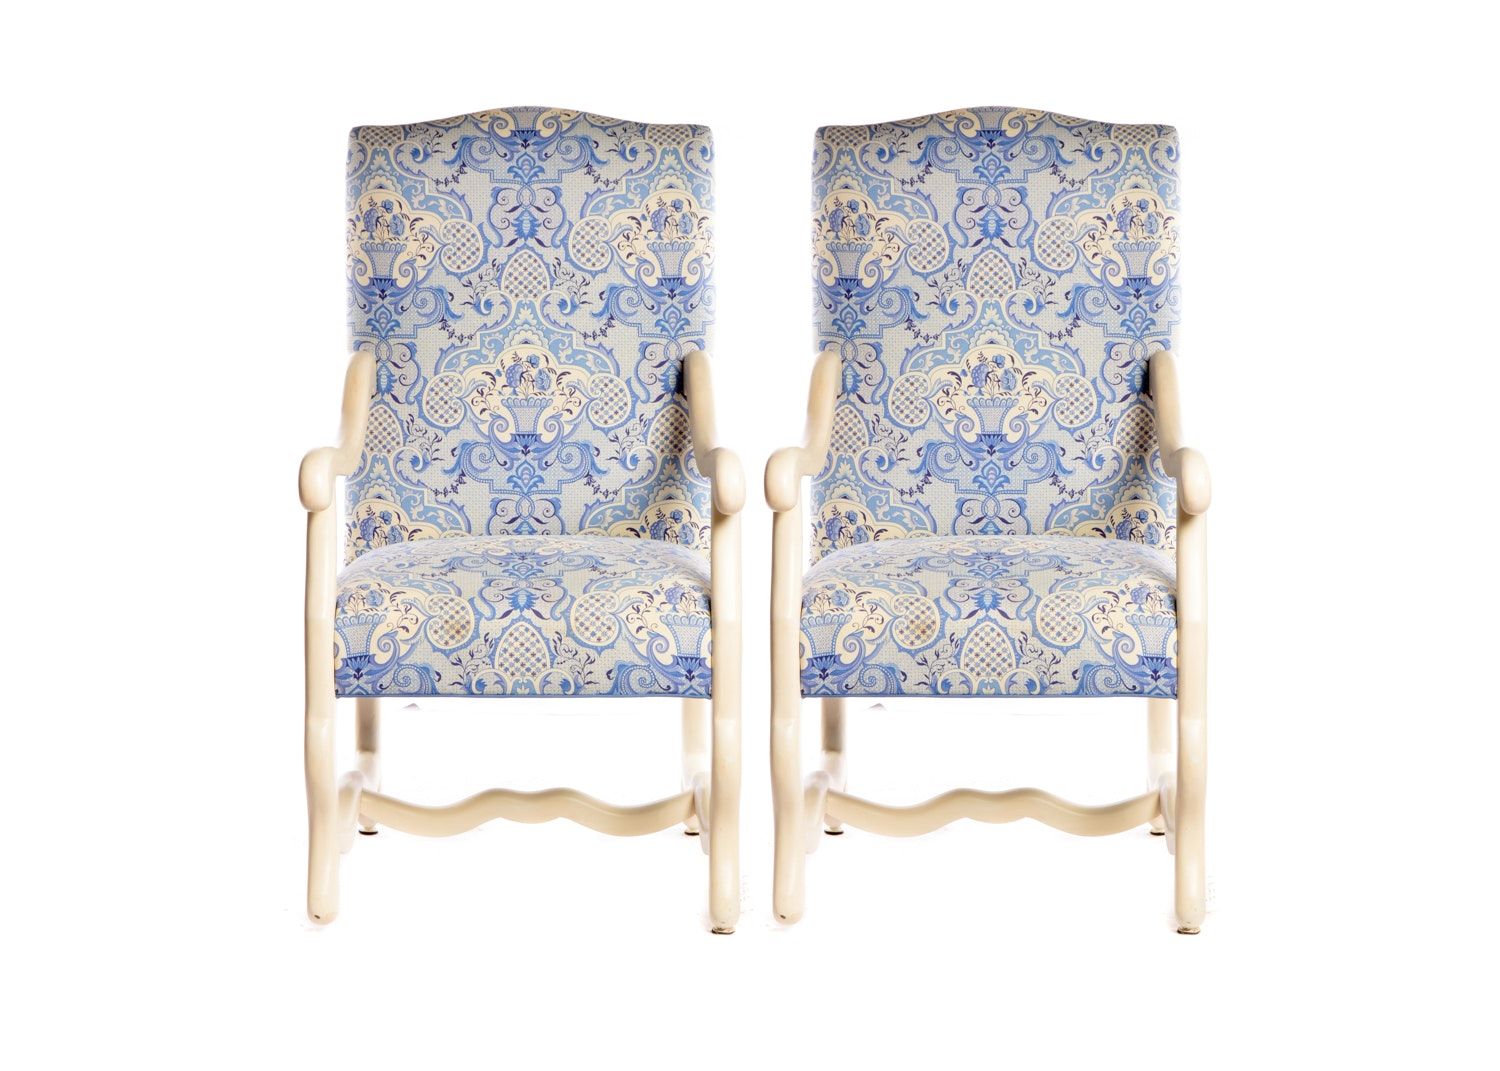 Louis XIII Style Painted Wood Frame Upholstered Armchairs, 21st Century